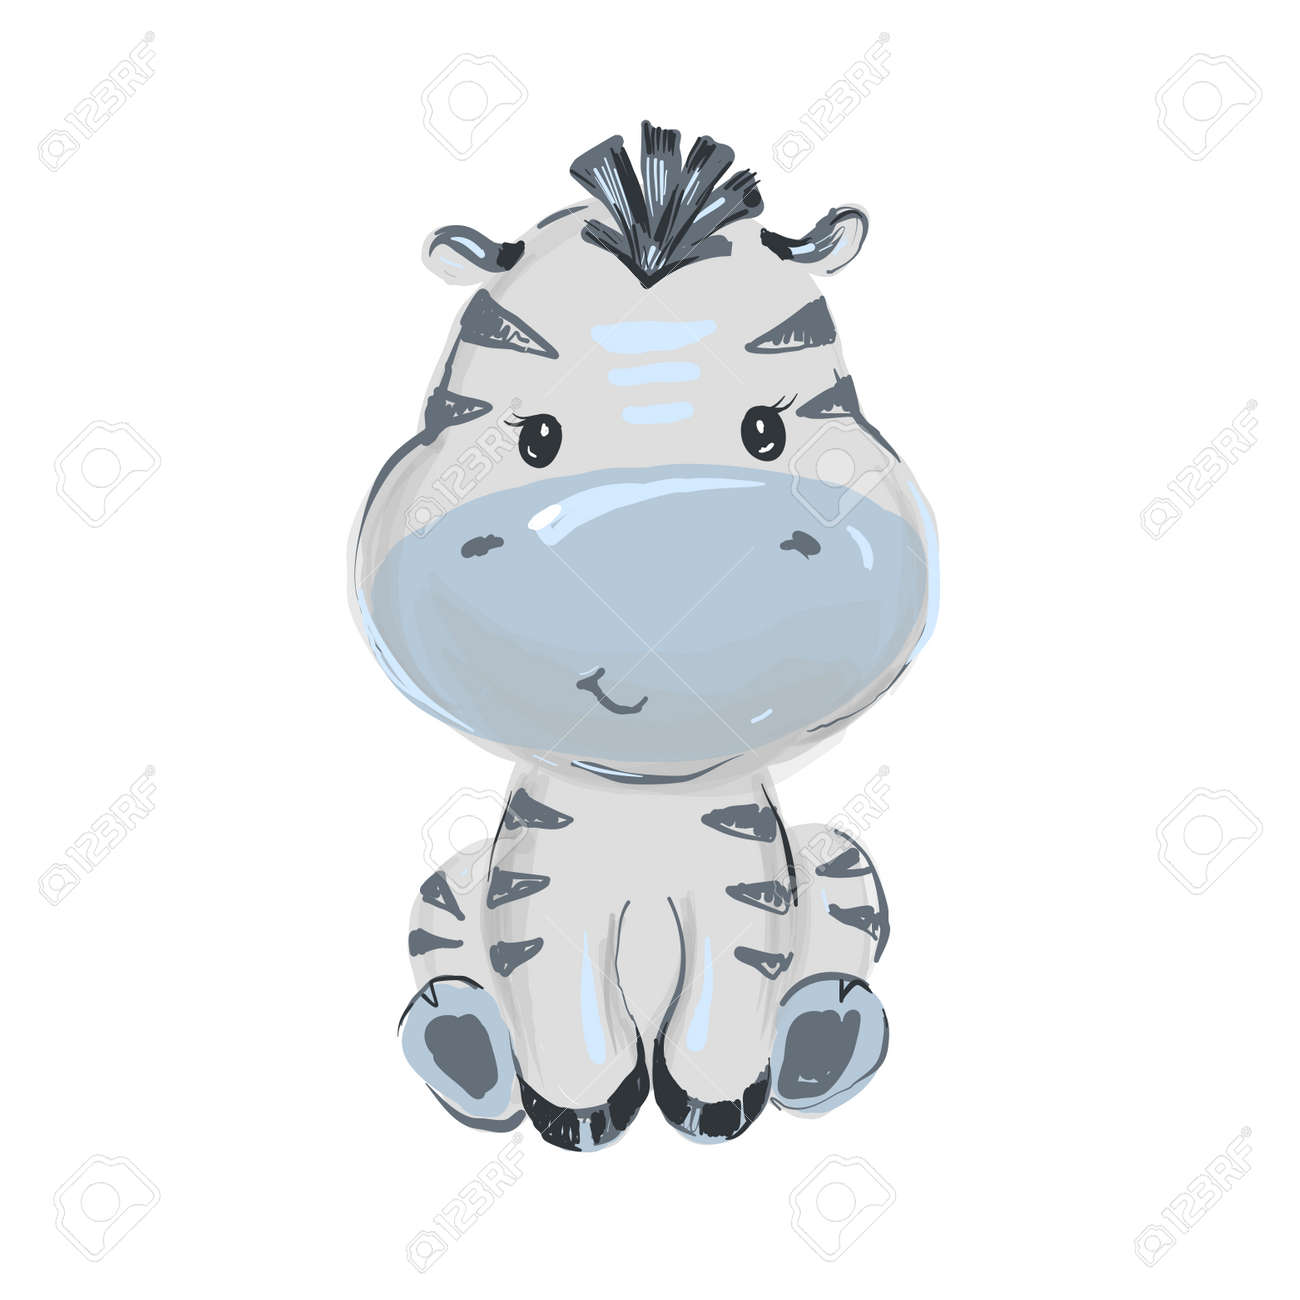 Cute baby hippo seating and smiling illustration - 163187666